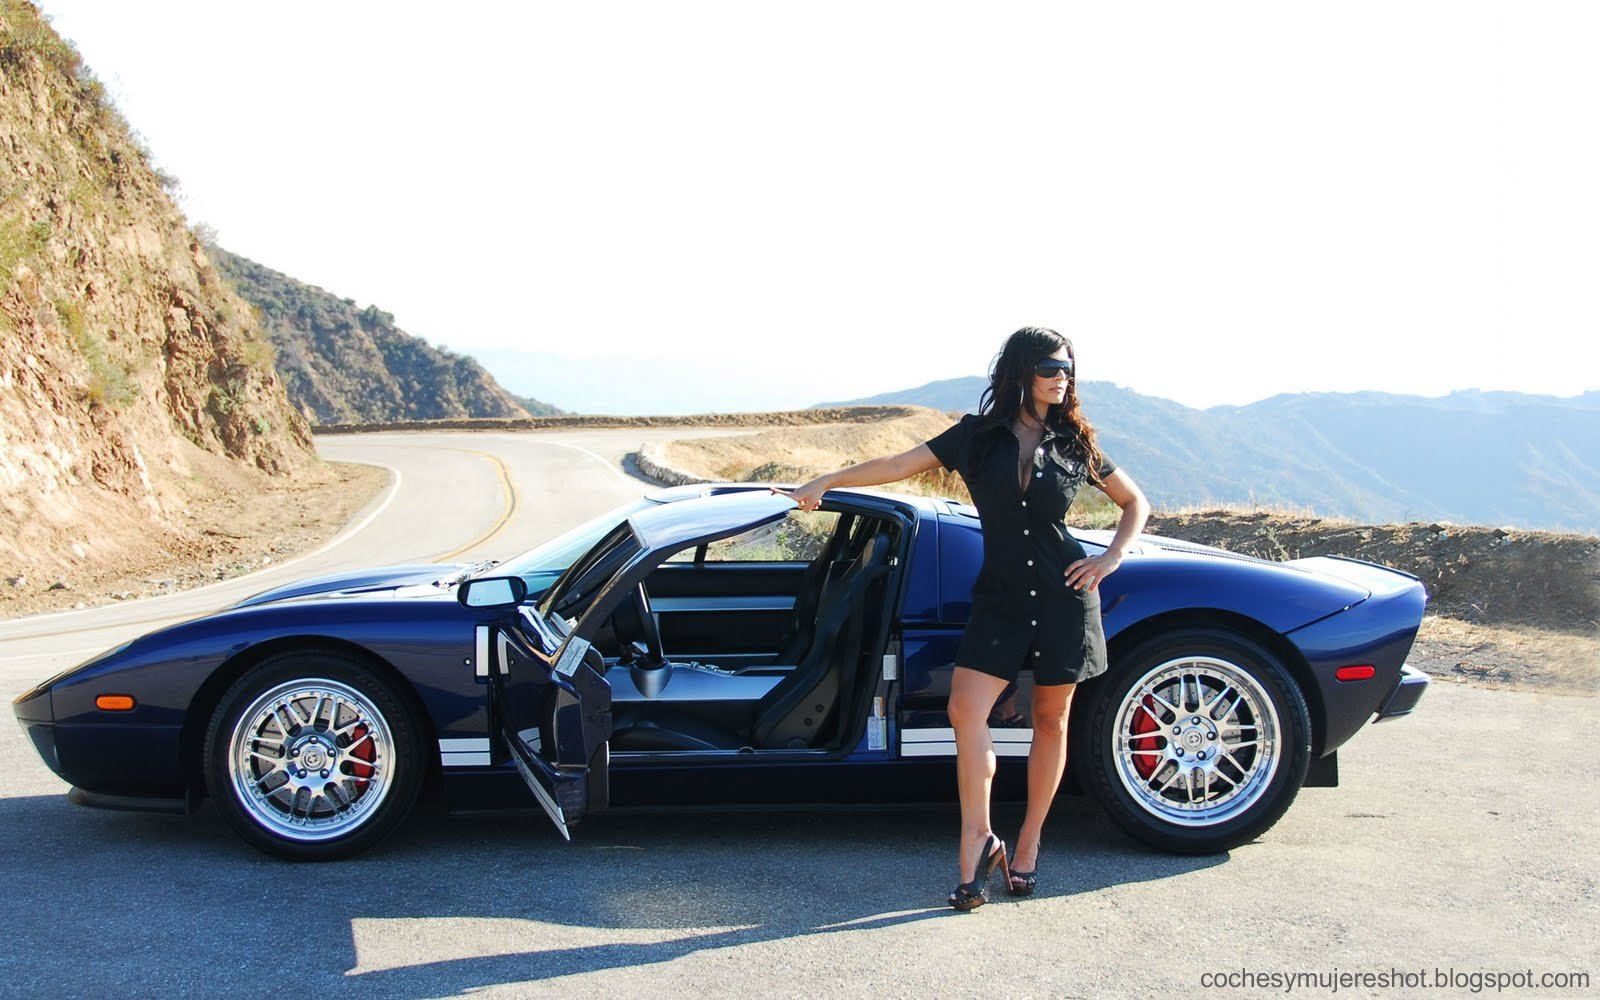 Coches Mujeres Morocha Ford Gt Supercar Wallpaper